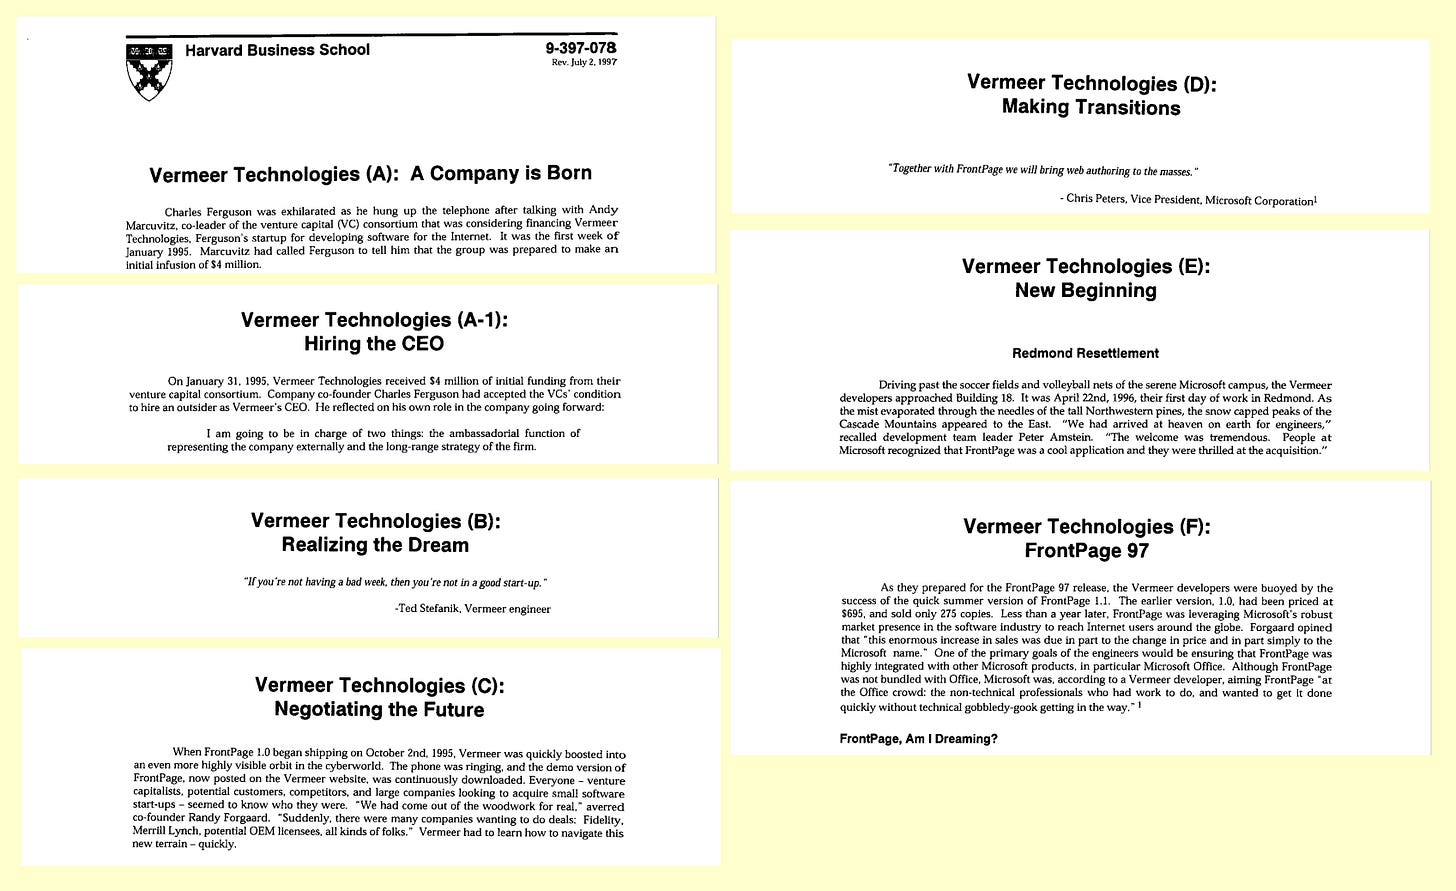 Scanned images of the title pages of all 7 parts of the Harvard case study on Vermeer.